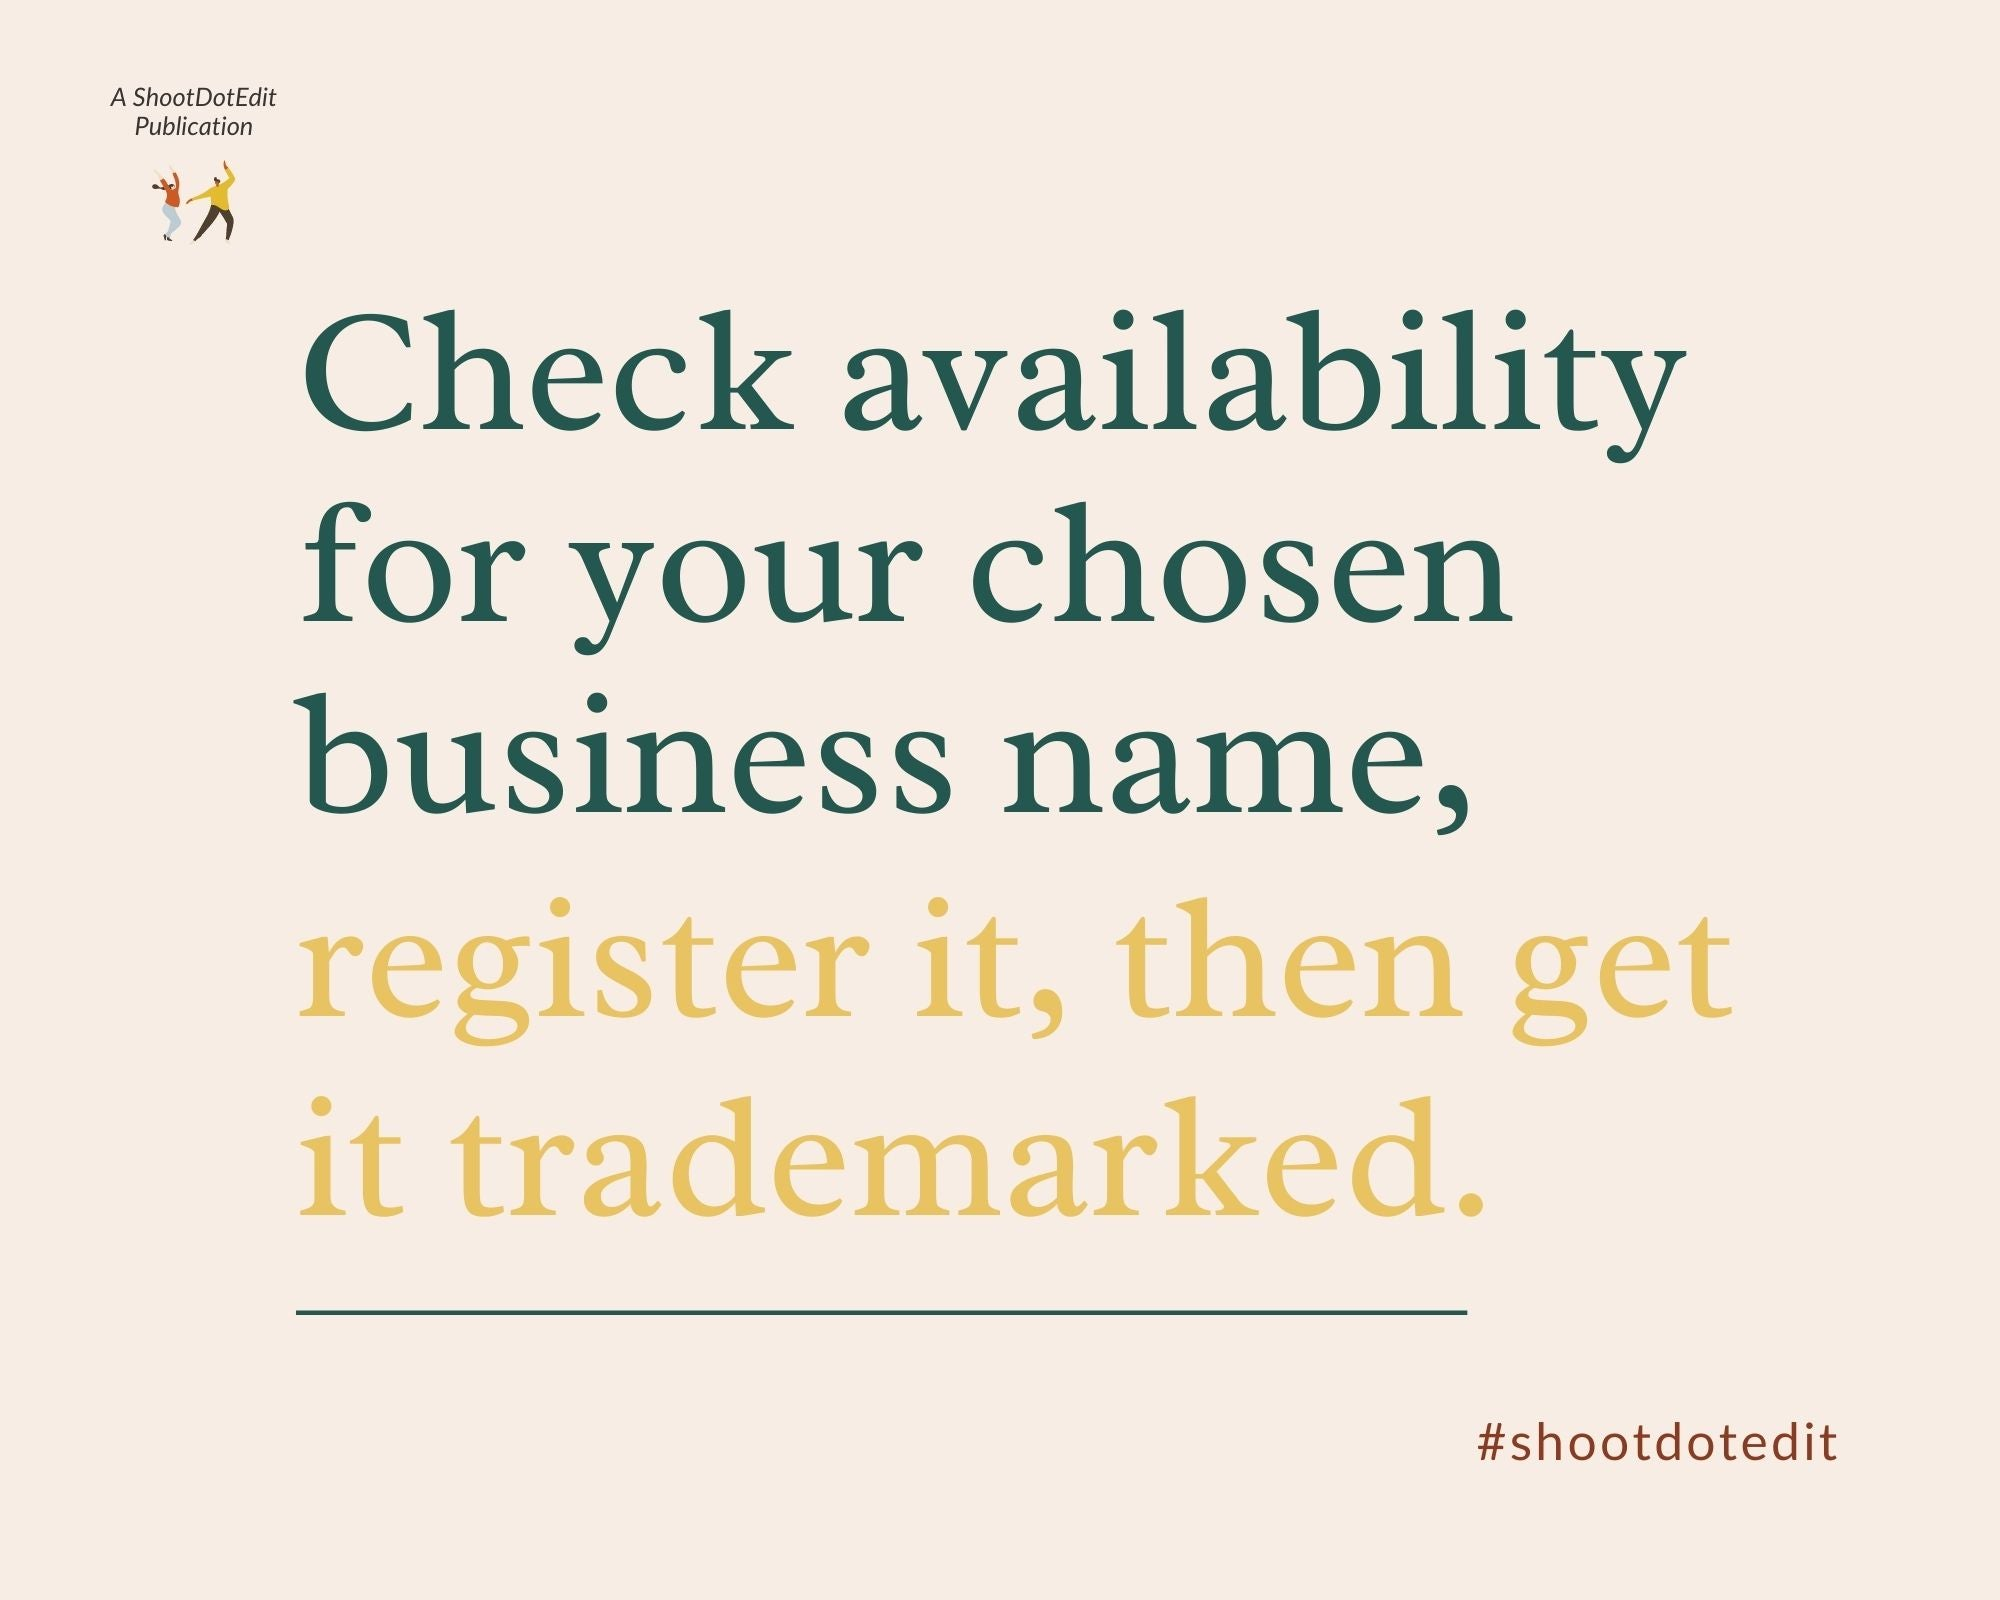 Infographic stating check availability for your chosen business name, register it, then get it trademarked